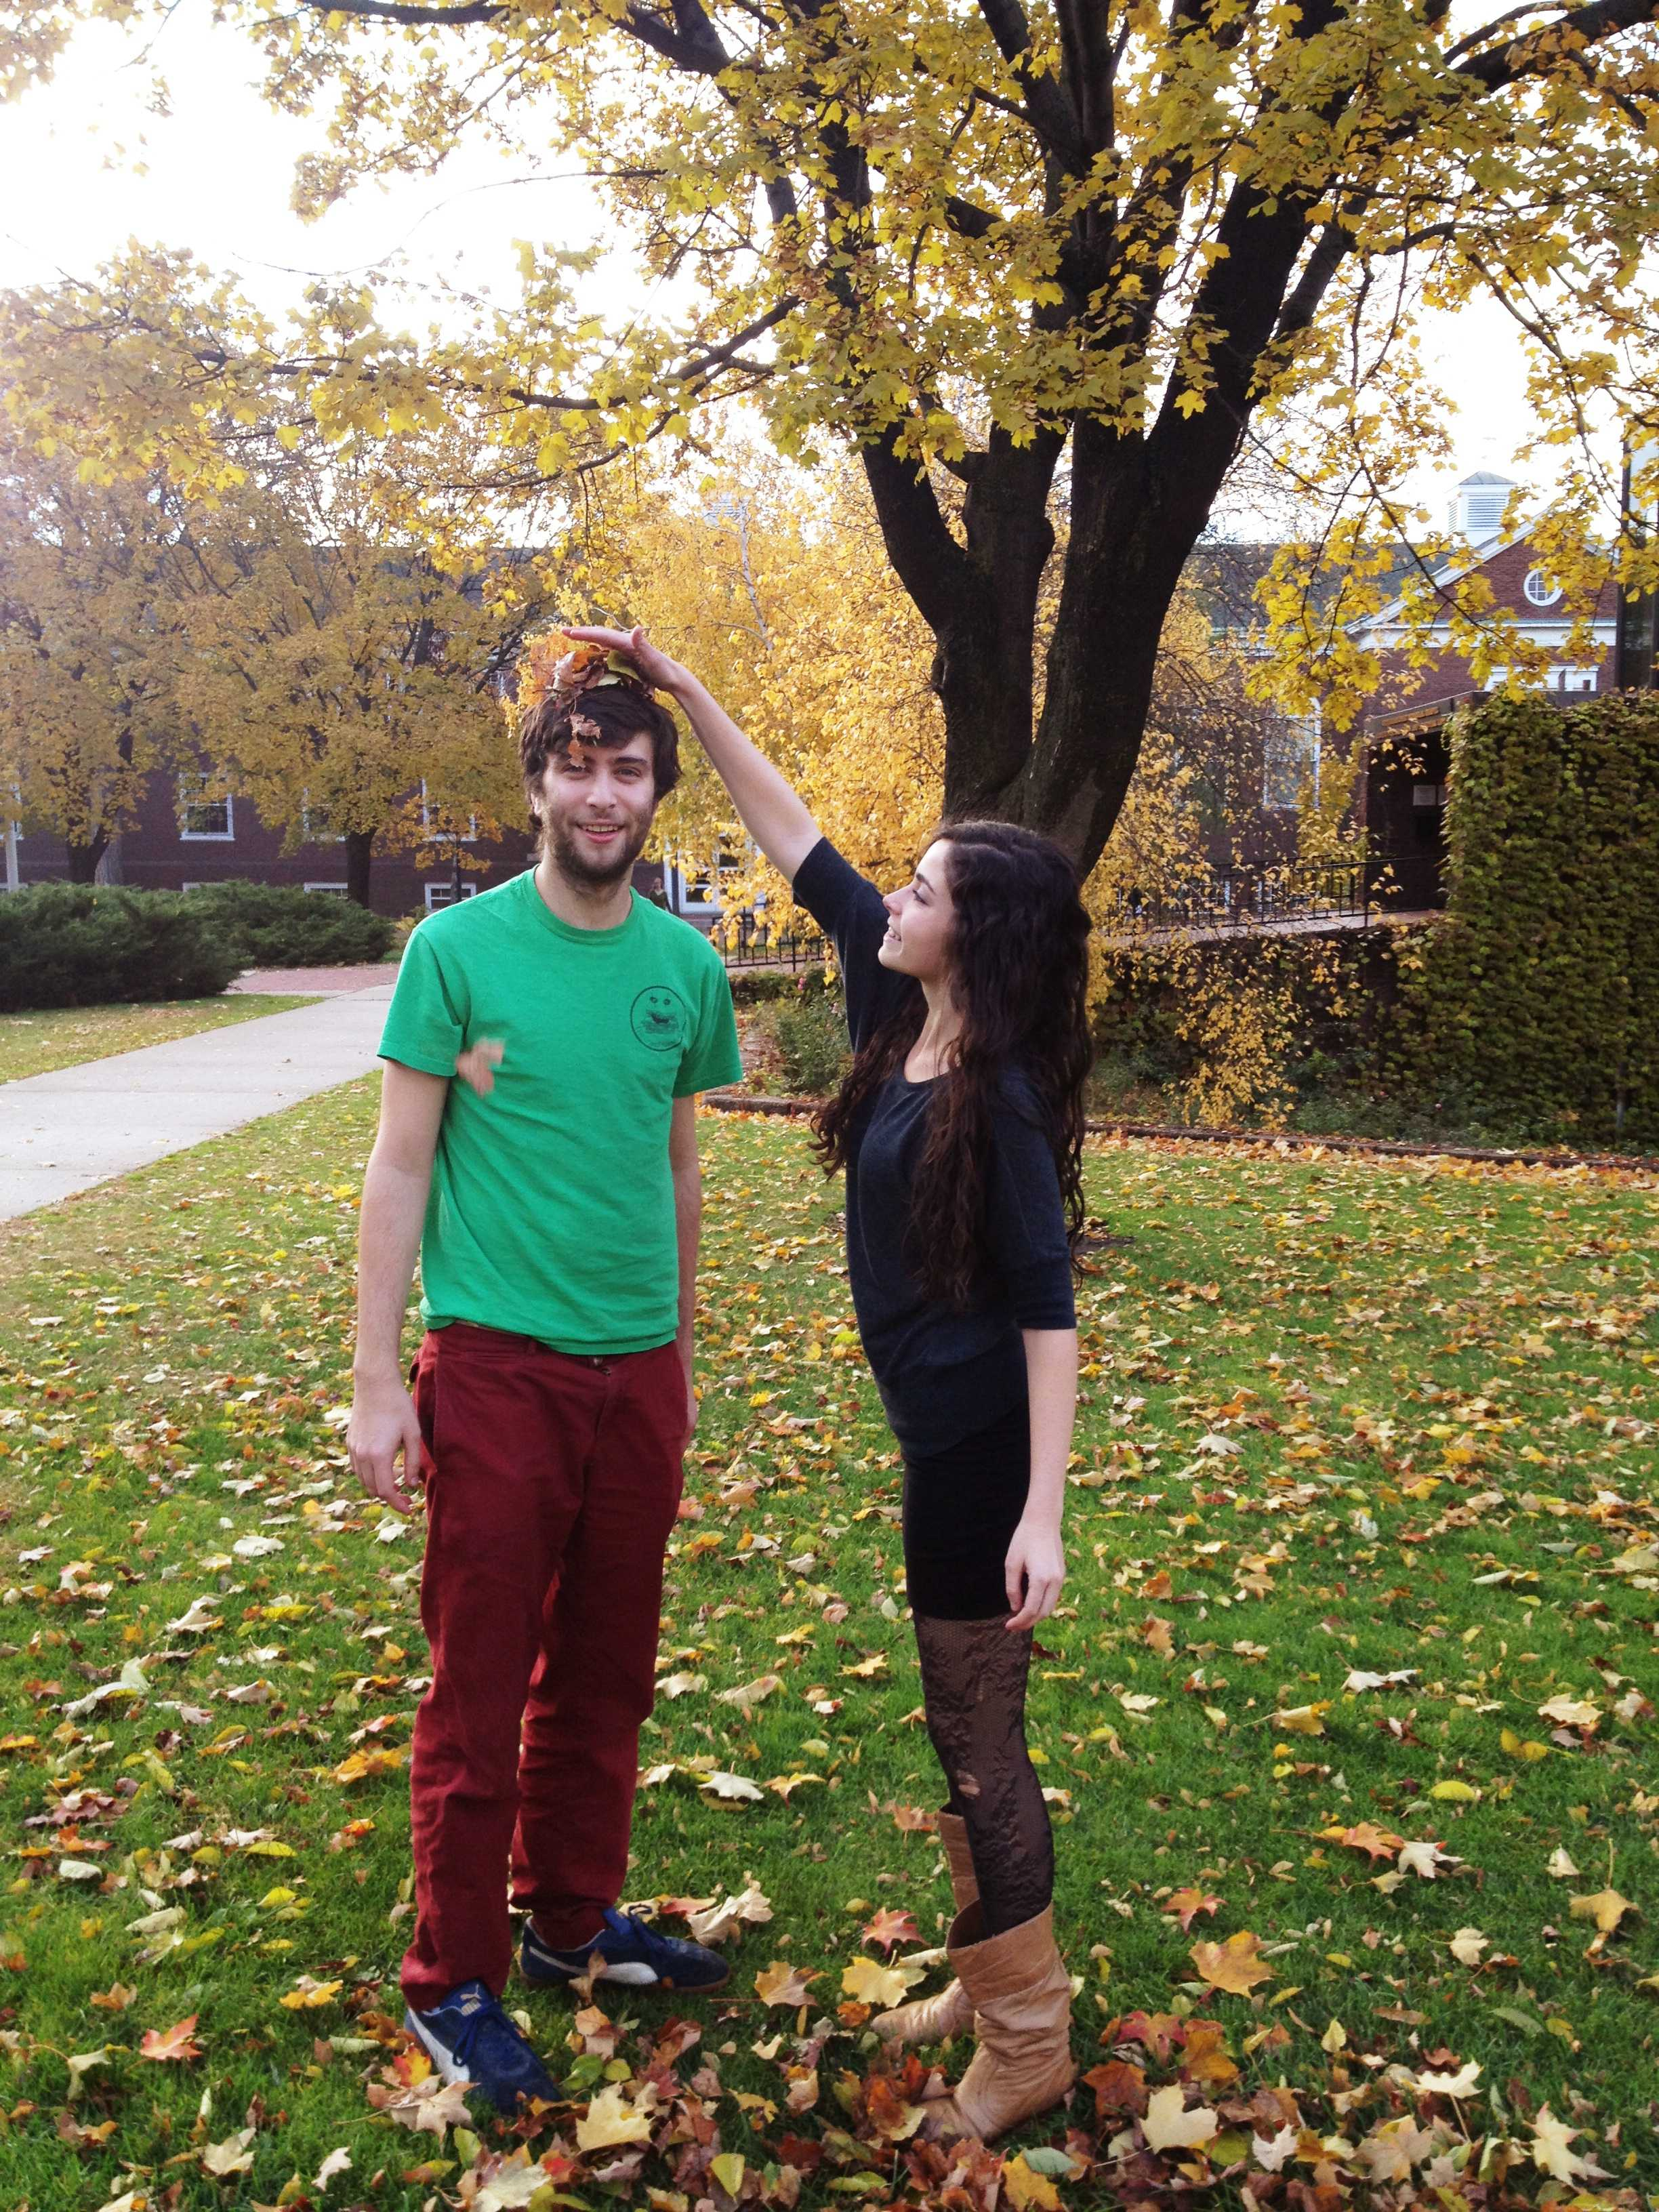 Joe Evers '14 (left) and Michelle Einstein '14 (right) are the editors-in-chief of Macalester's only humorous publication, The Hegemonocle. Though most of their time is taken up by being hilarious, they spend what little free time they do have perfecting their other art: interpretive dance. Photo by Sophie Nikitas '14.